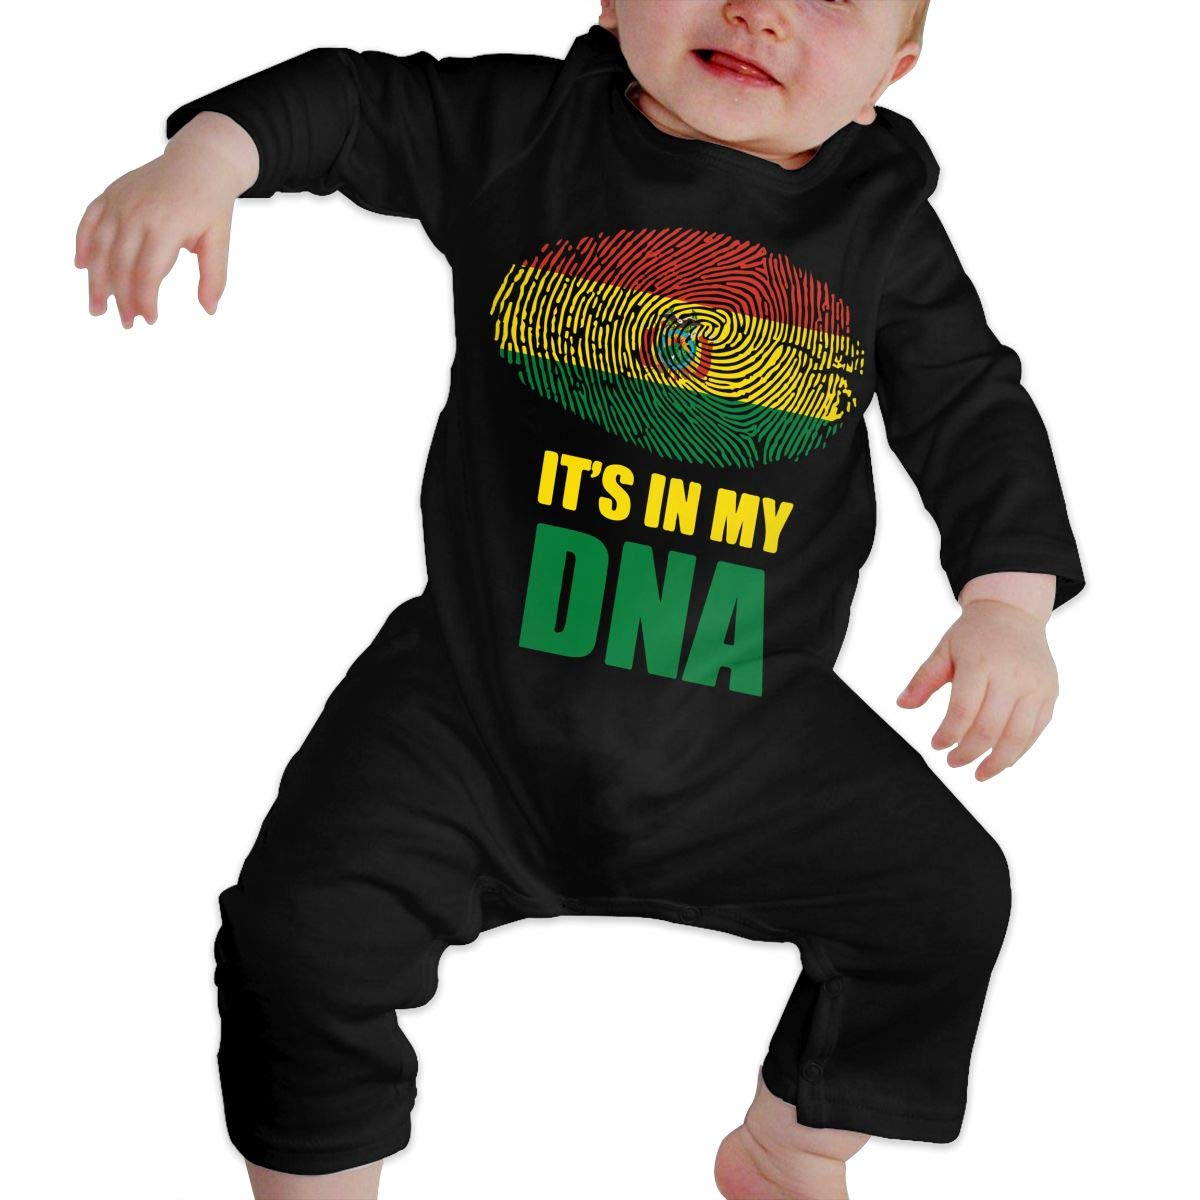 Toddler Baby Boy Girl Coverall Bolivian Its in My DNA Toddler Jumpsuit